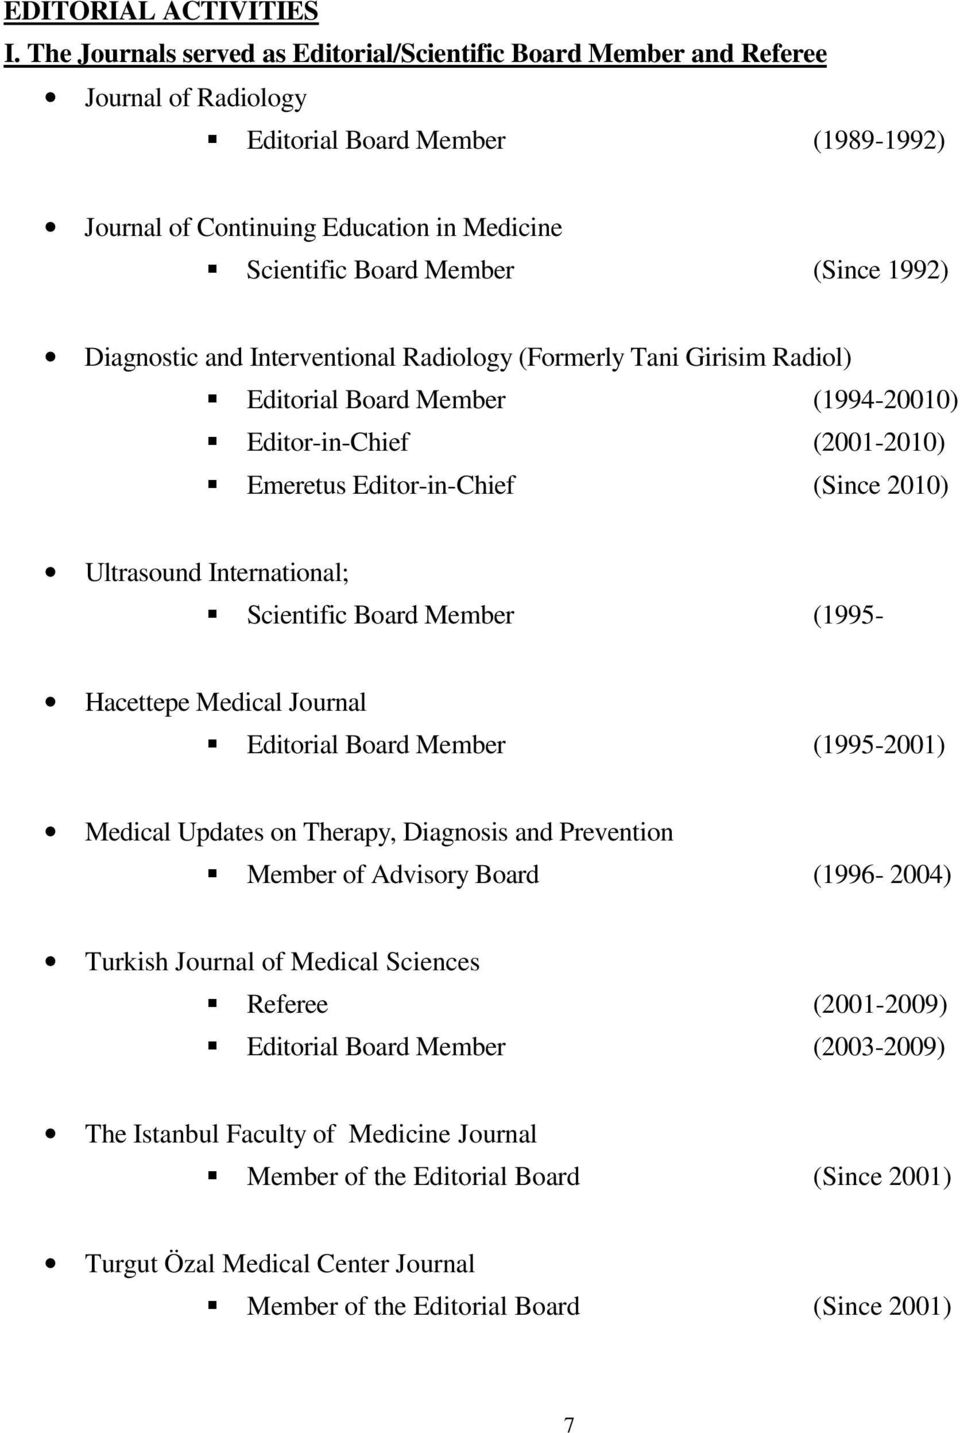 1992) Diagnostic and Interventional Radiology (Formerly Tani Girisim Radiol) Editorial Board Member (1994-20010) Editor-in-Chief (2001-2010) Emeretus Editor-in-Chief (Since 2010) Ultrasound